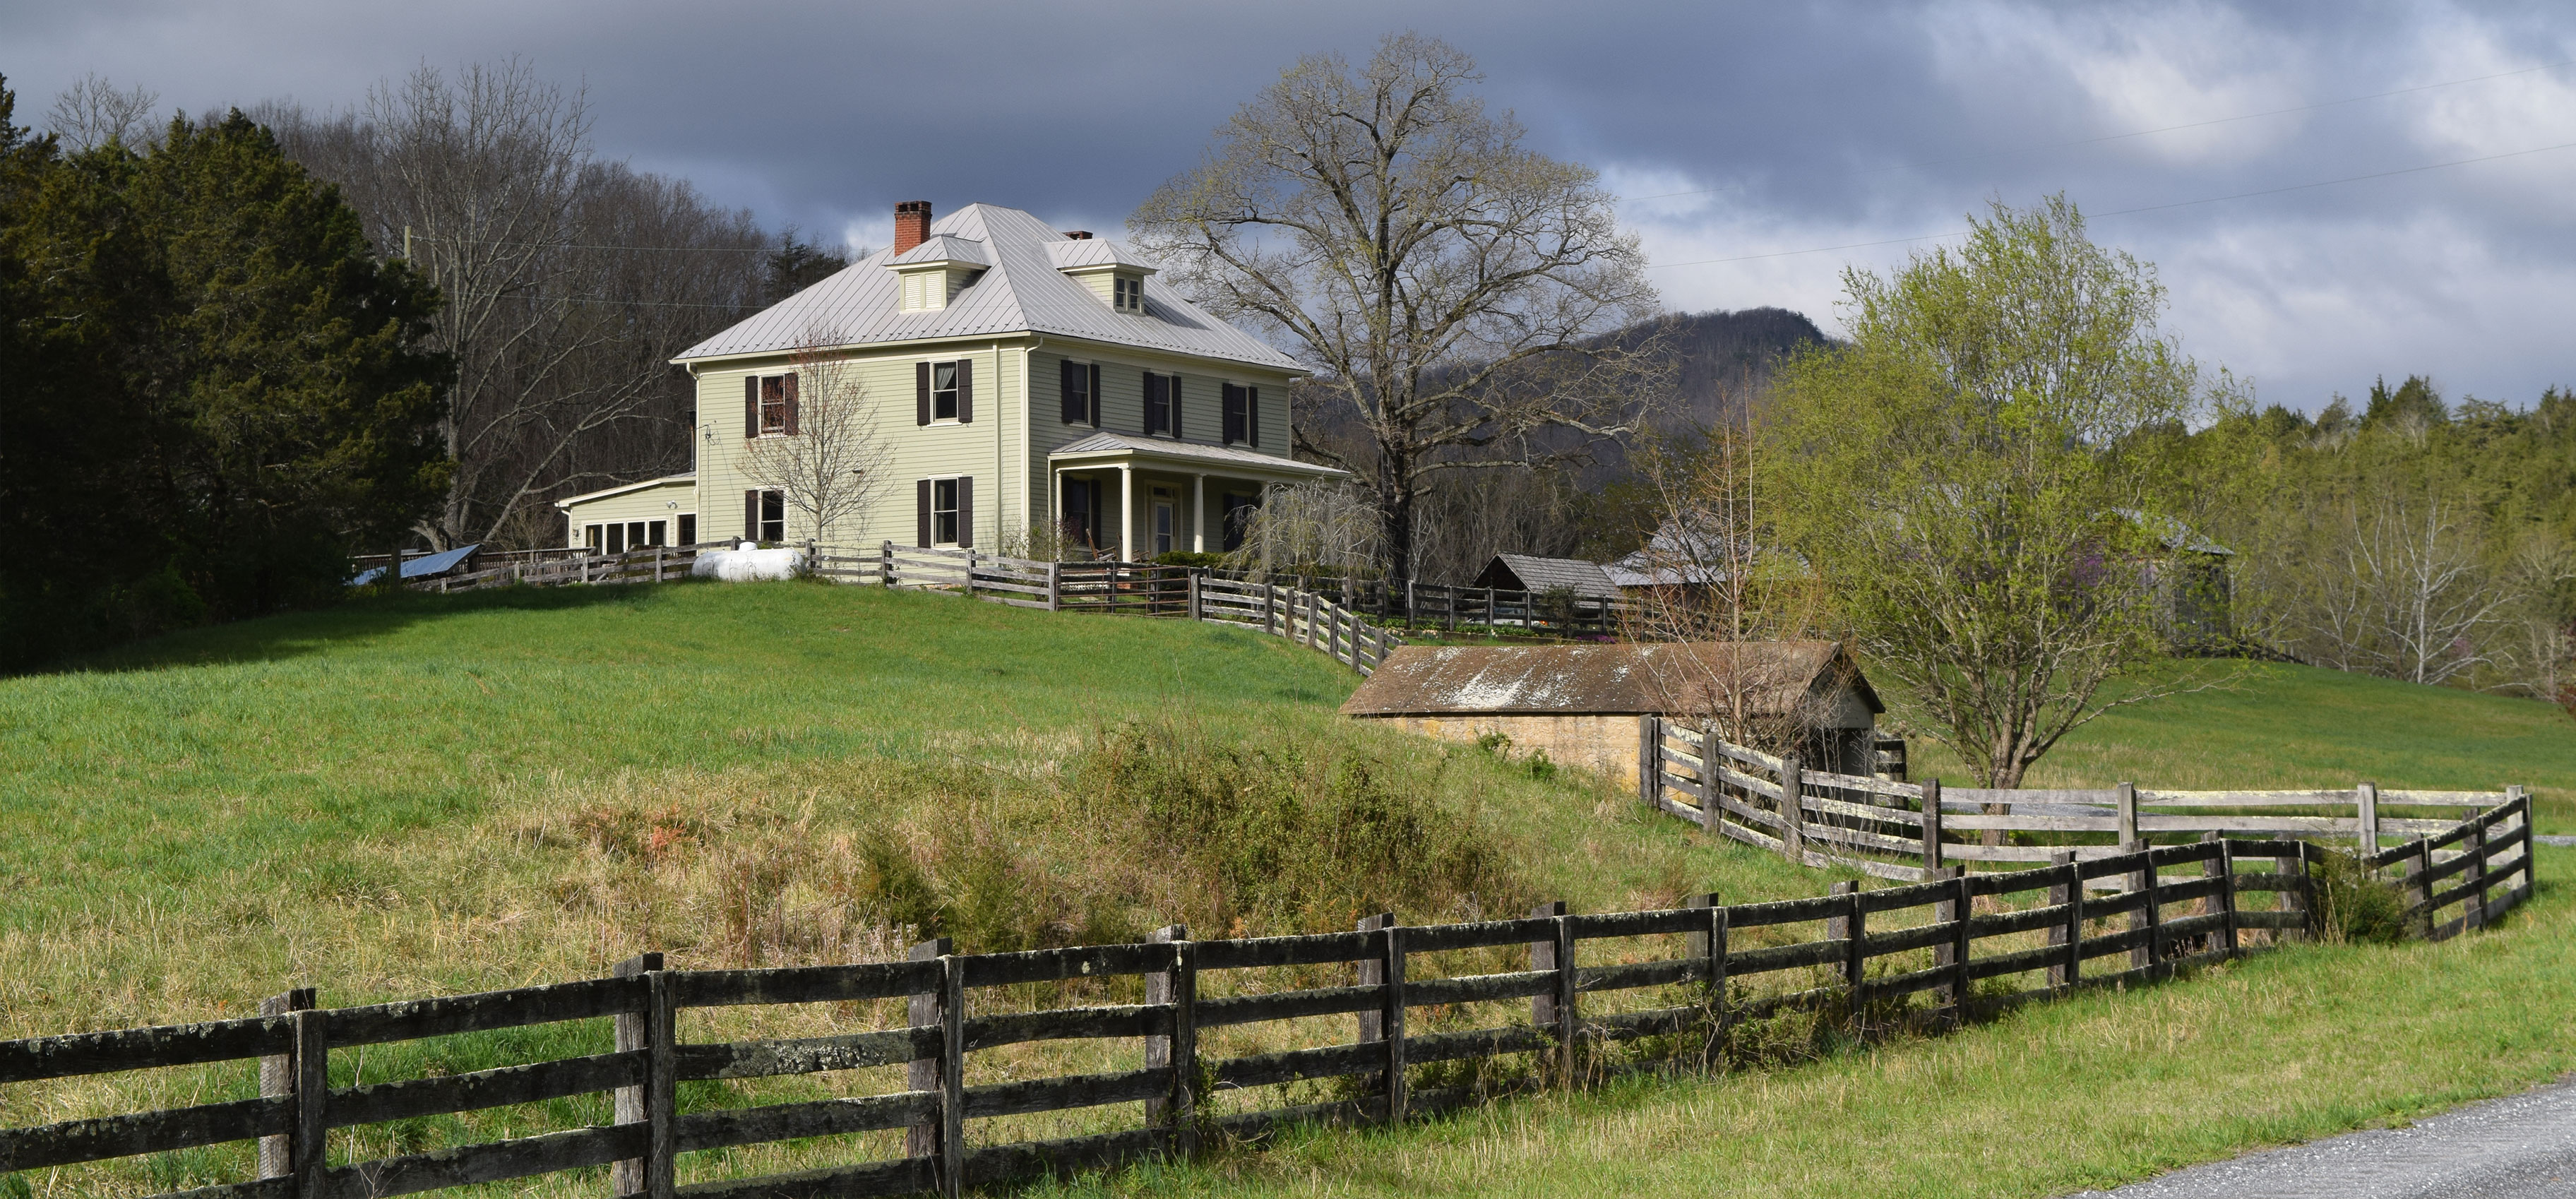 Buffalo Creek Boys School Rockbridge Lexington Virginia